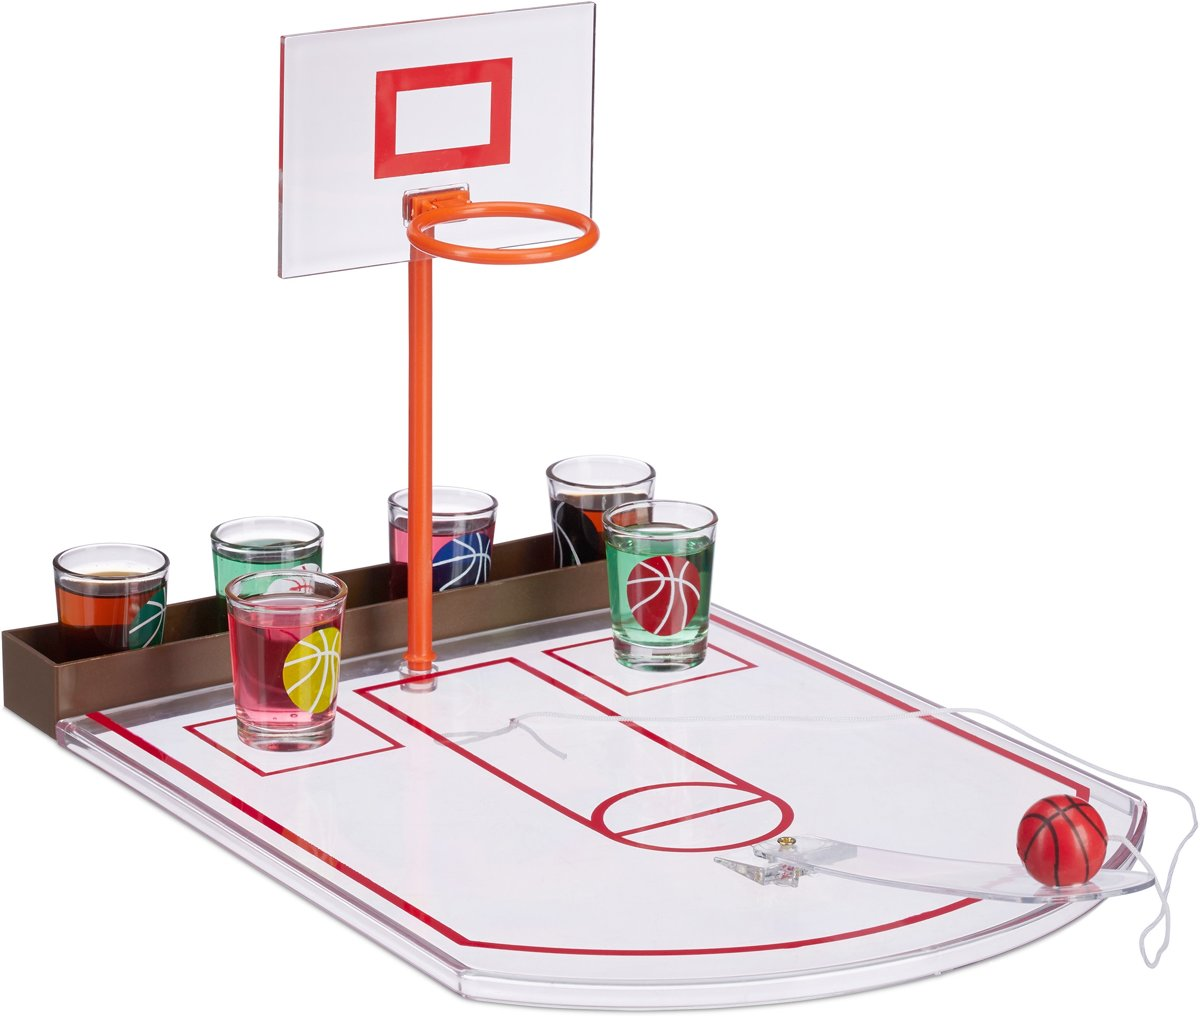 relaxdays basketbal drinkspel met 6 glaasjes - zuipspel - drankspel basket - shotglas game